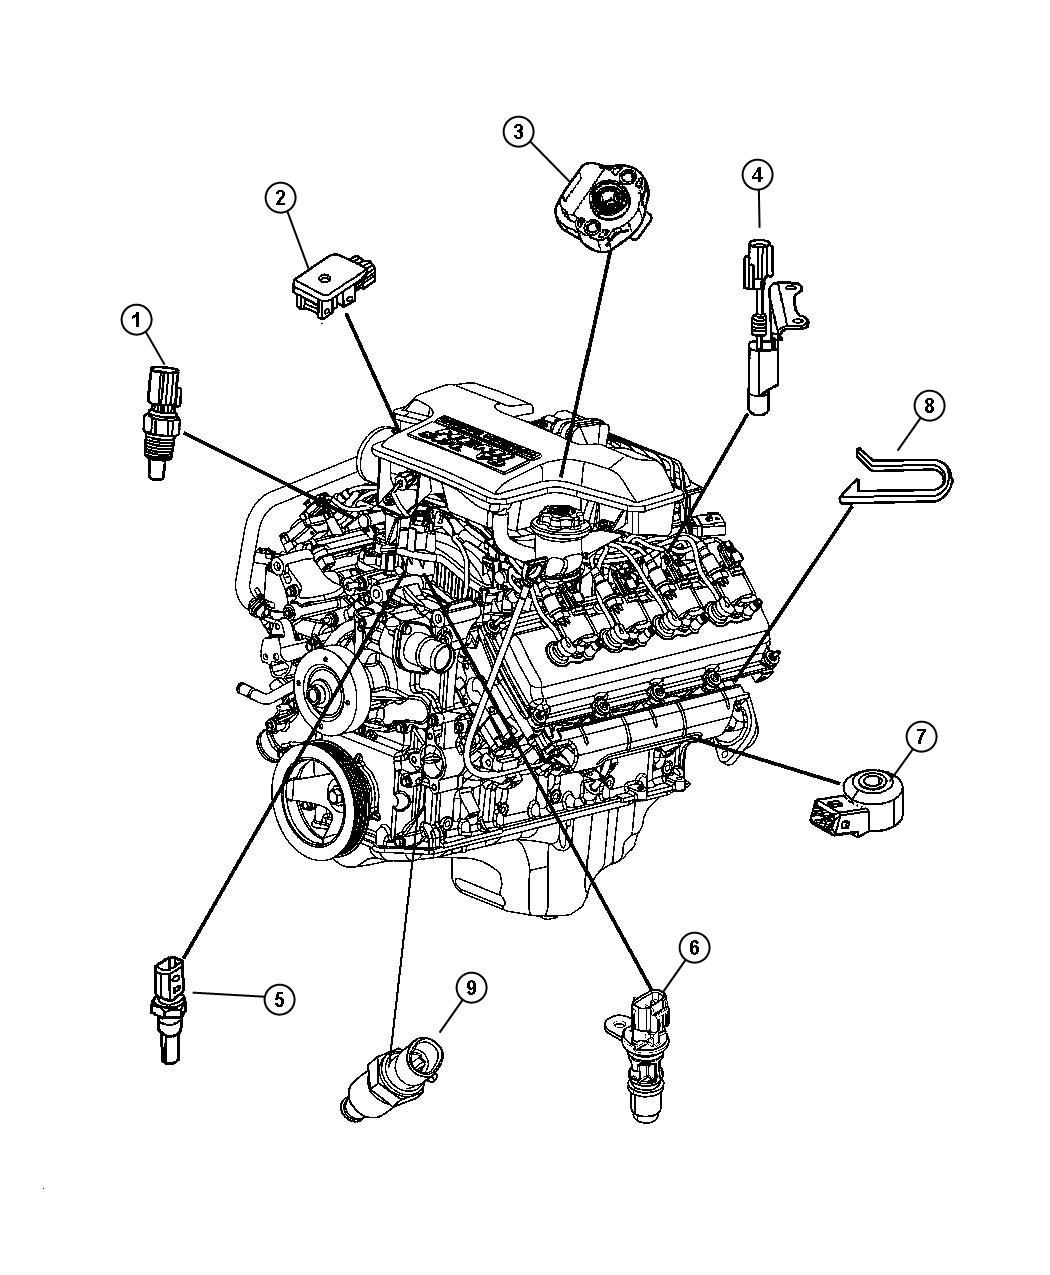 5 7l Chevy Engine Parts Diagram on dodge ram 1500 wiring diagram